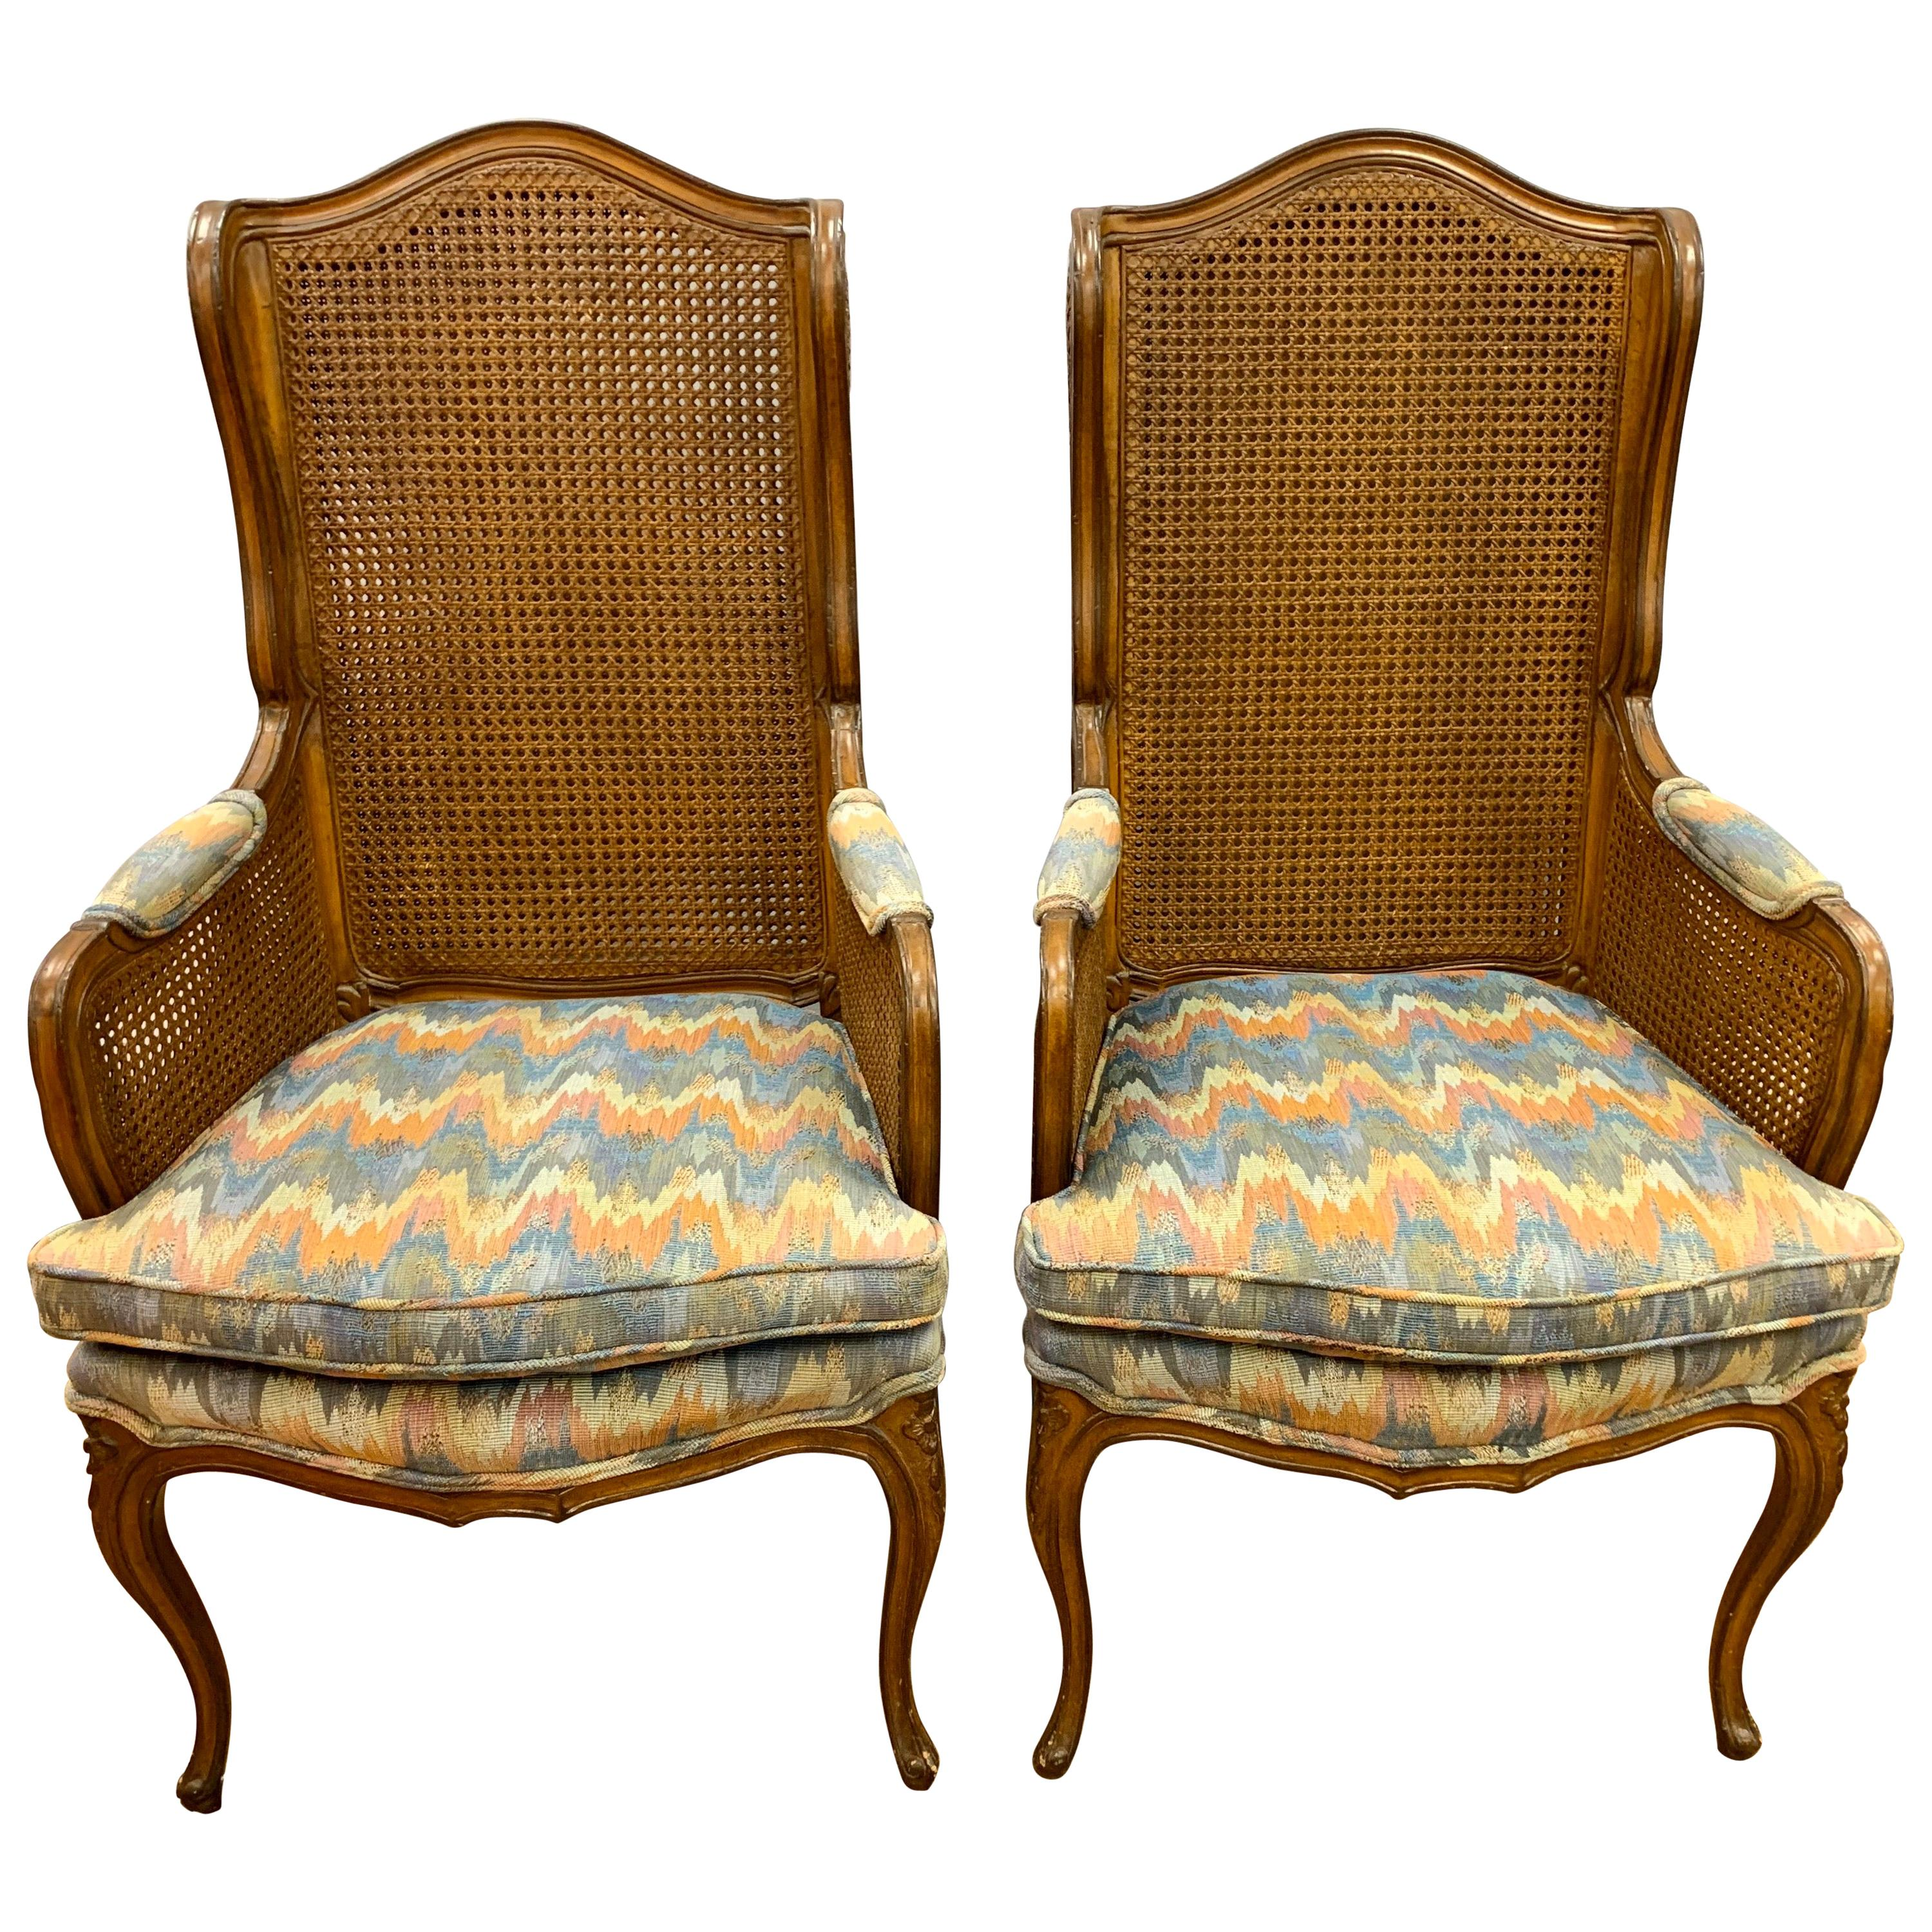 Pair of Vintage French Cane Wing Back Chairs